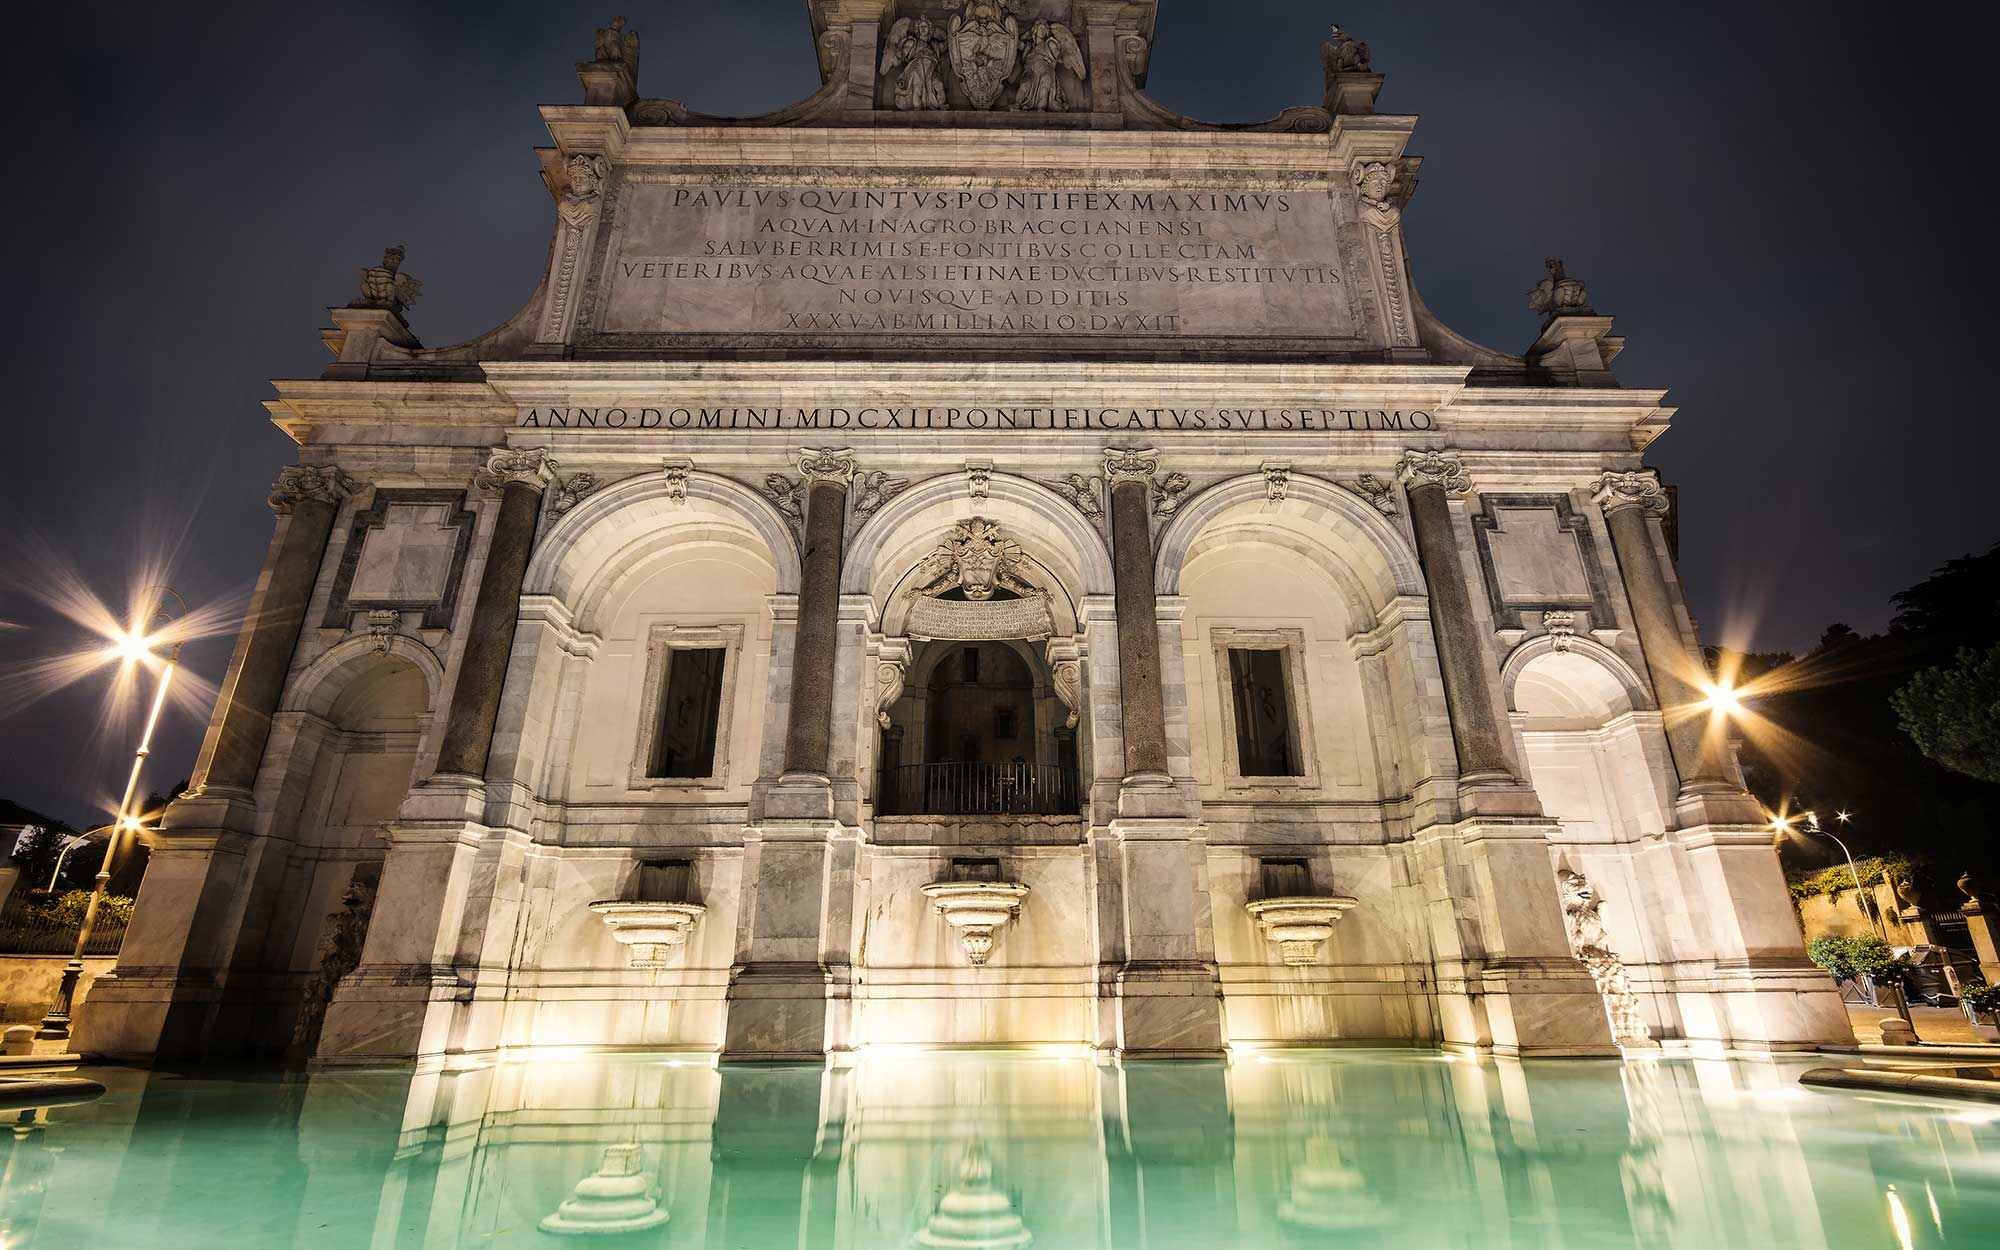 12 Roman Fountains That Will Make You Want to Book a Flight: Fontana dell'Acqua Paola